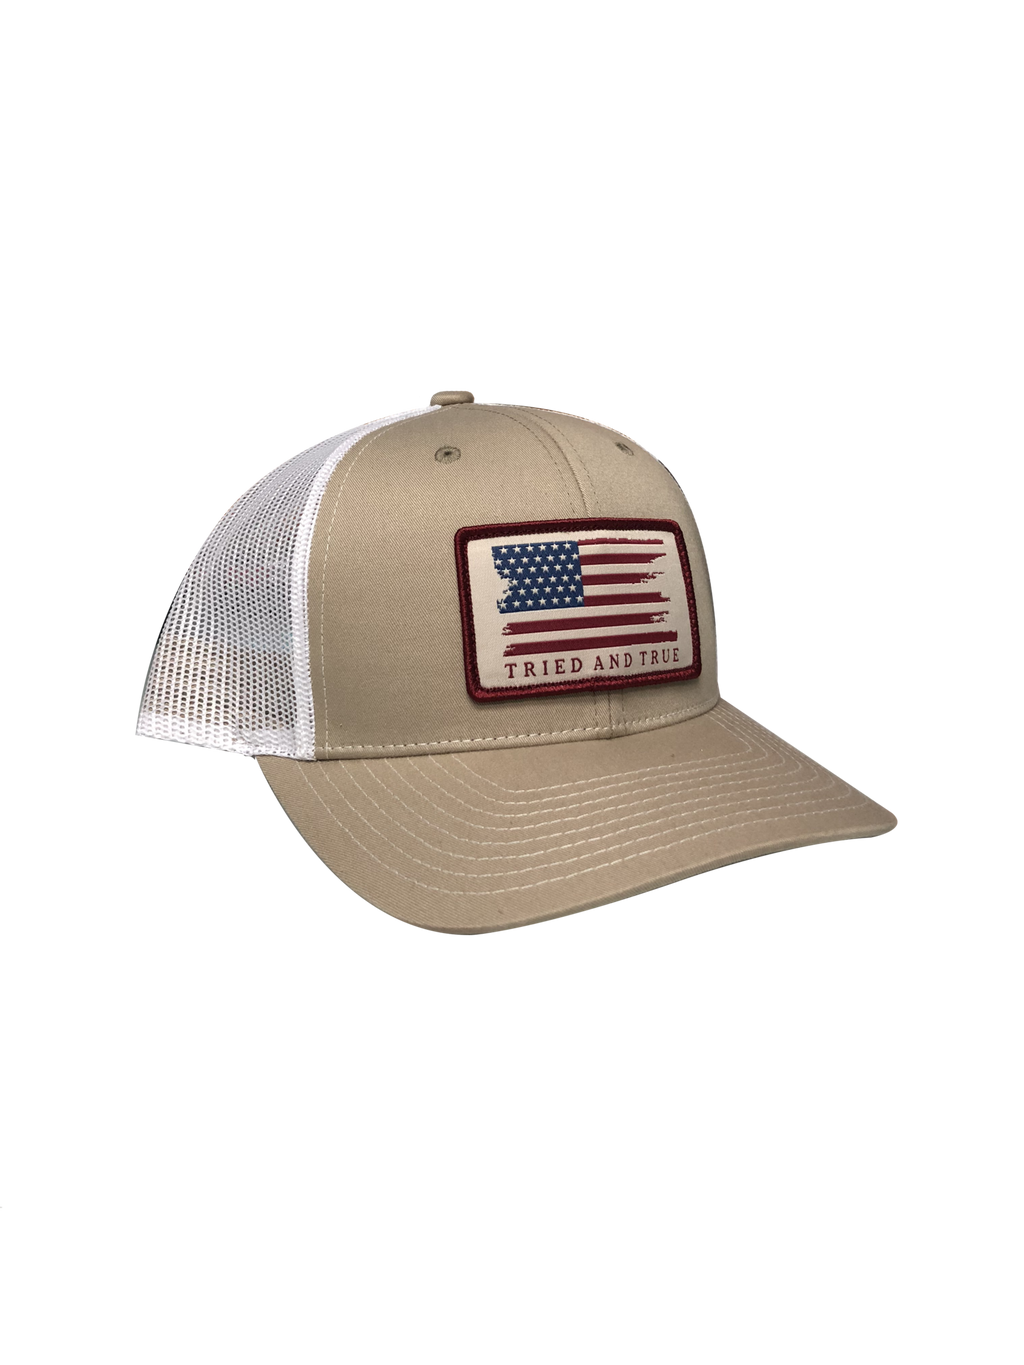 Tried and True 'Flag' Woven Patch Trucker Hat - Khaki/White